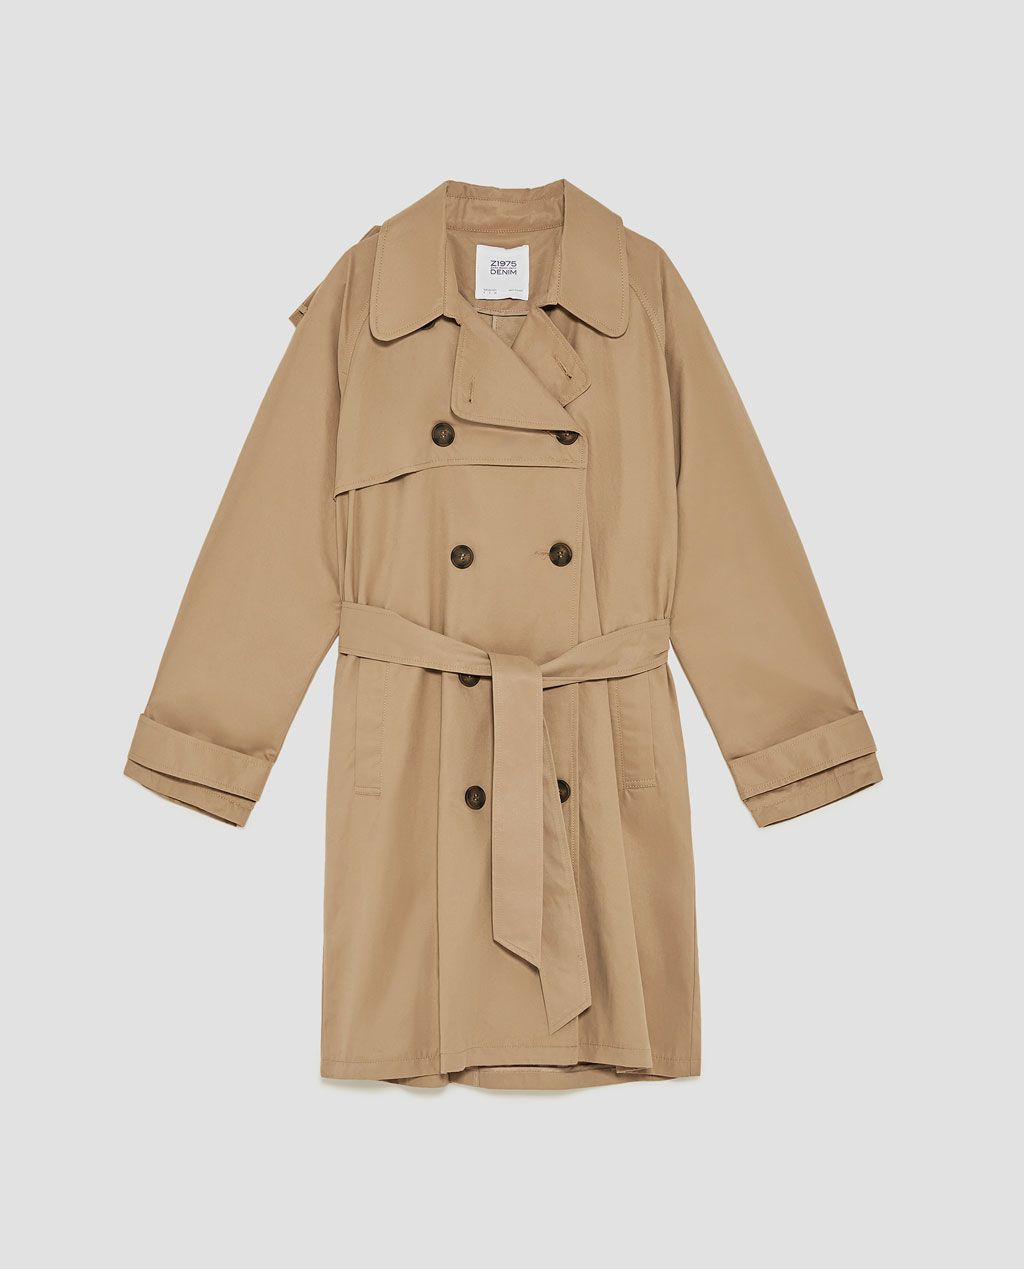 TRENCH XL-Trench-MANTEAUX-FEMME   ZARA France   Trench-coat   Mode 02d43750676